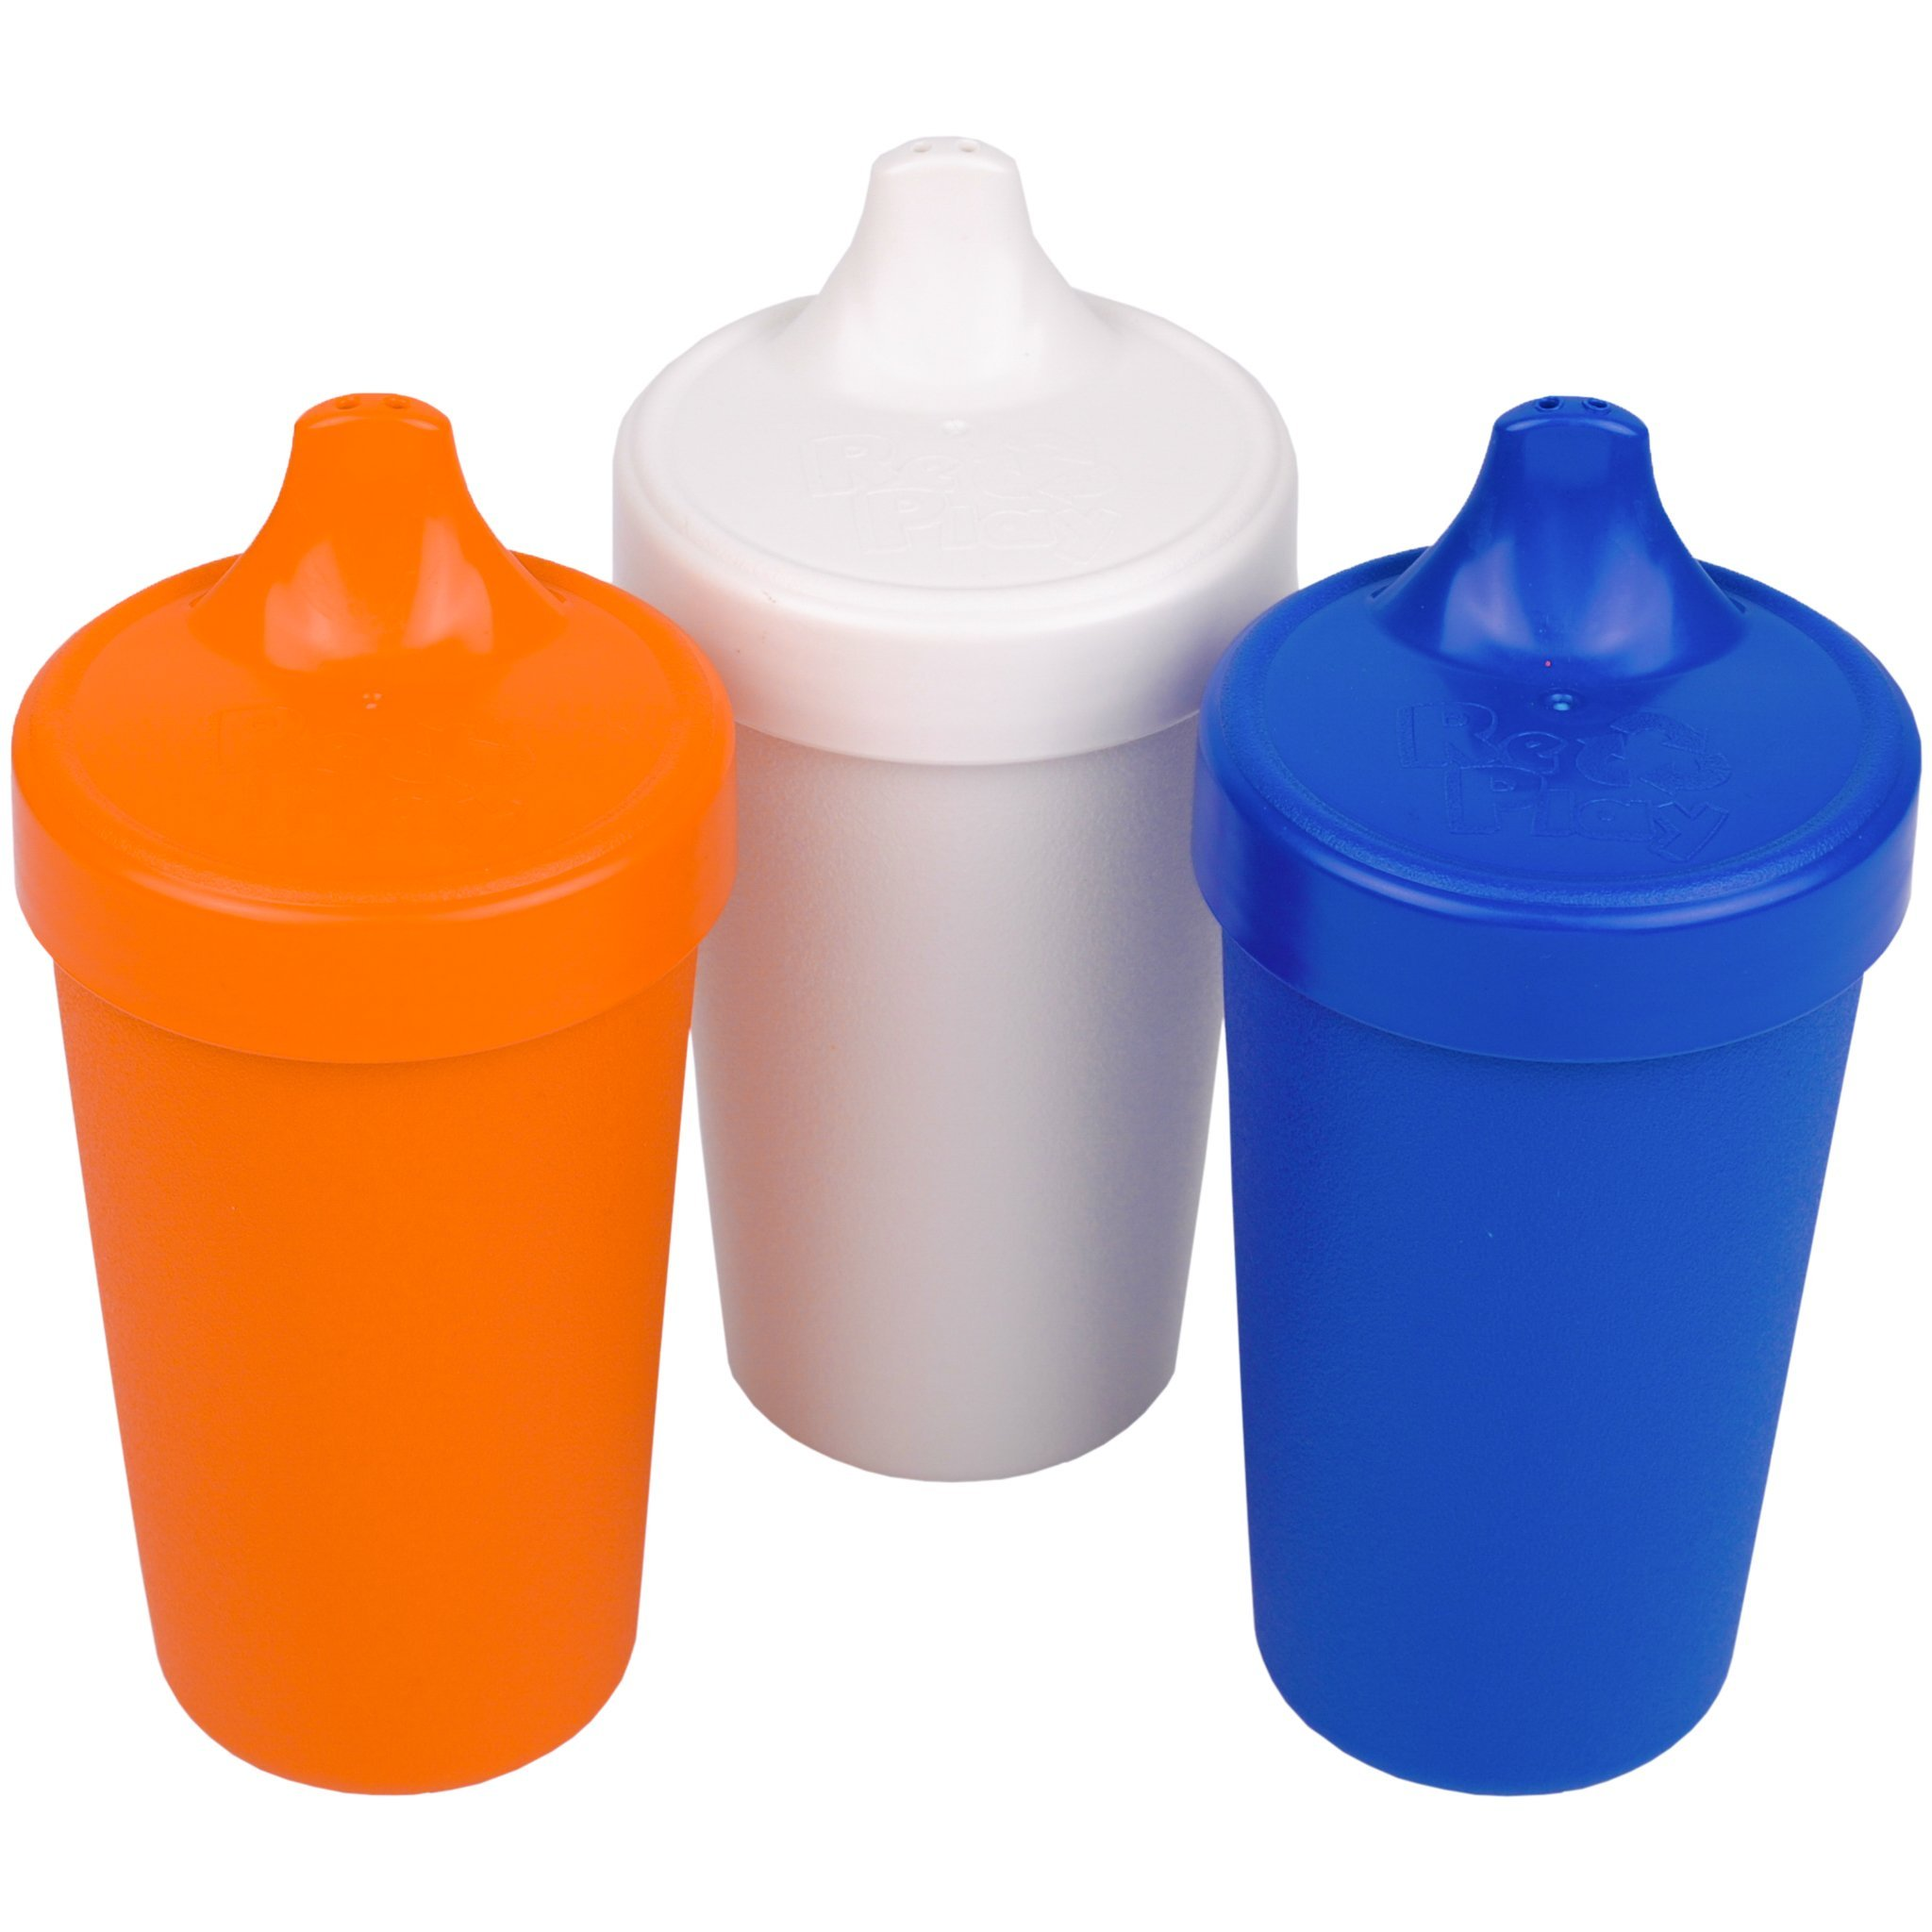 Re-Play Made in USA 3pk No Spill Sippy Cups for Baby, Toddler, and Child Feeding in Orange, White and Navy | Made from Eco Friendly Heavyweight Recycled Milk Jugs - Virtually Indestructible (Sport)